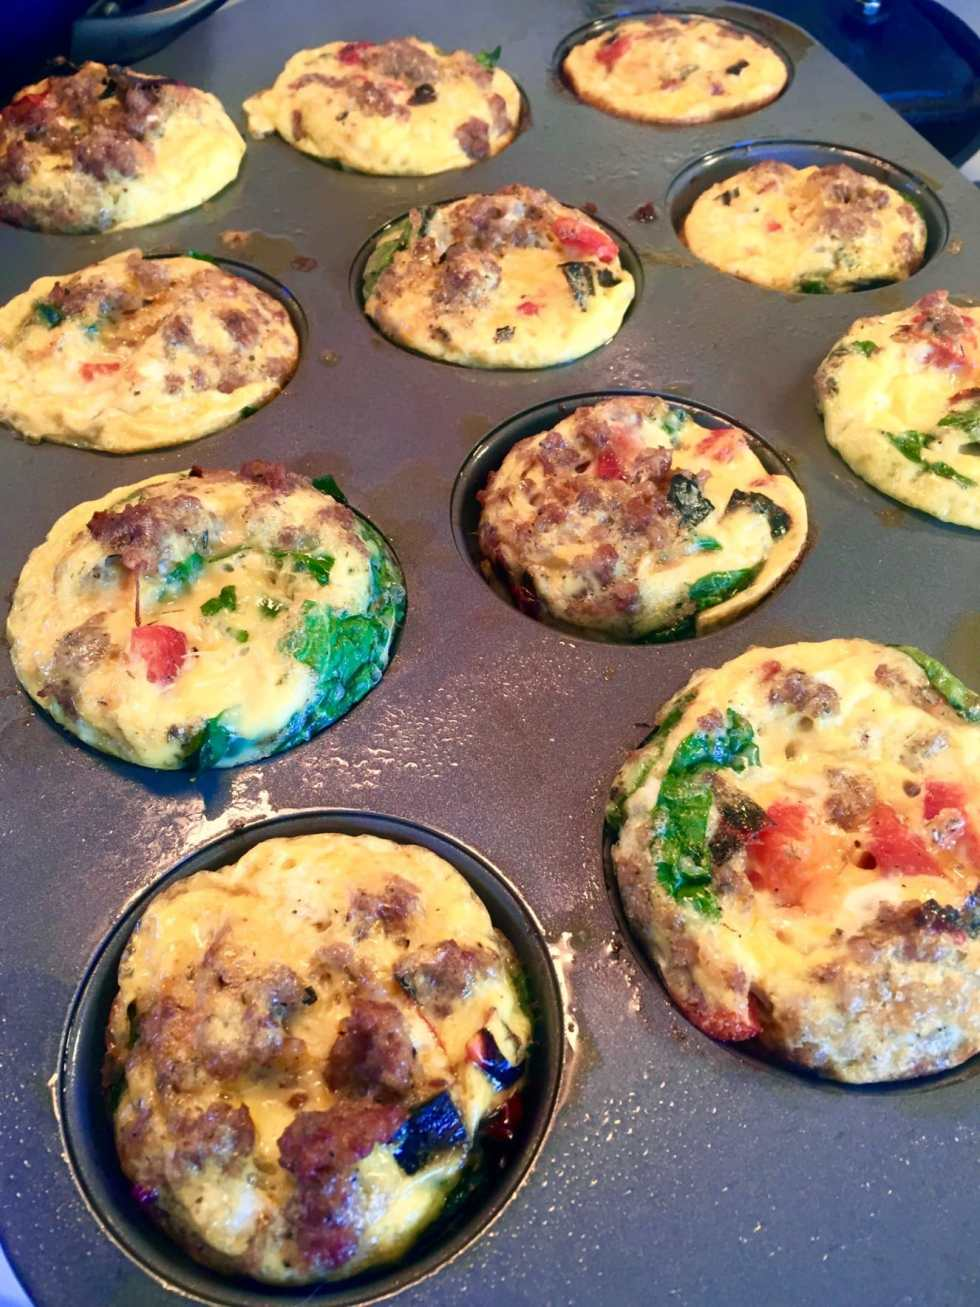 Whole30 Approved Egg Muffins on Katie Crafts; http://www.katiecrafts.com